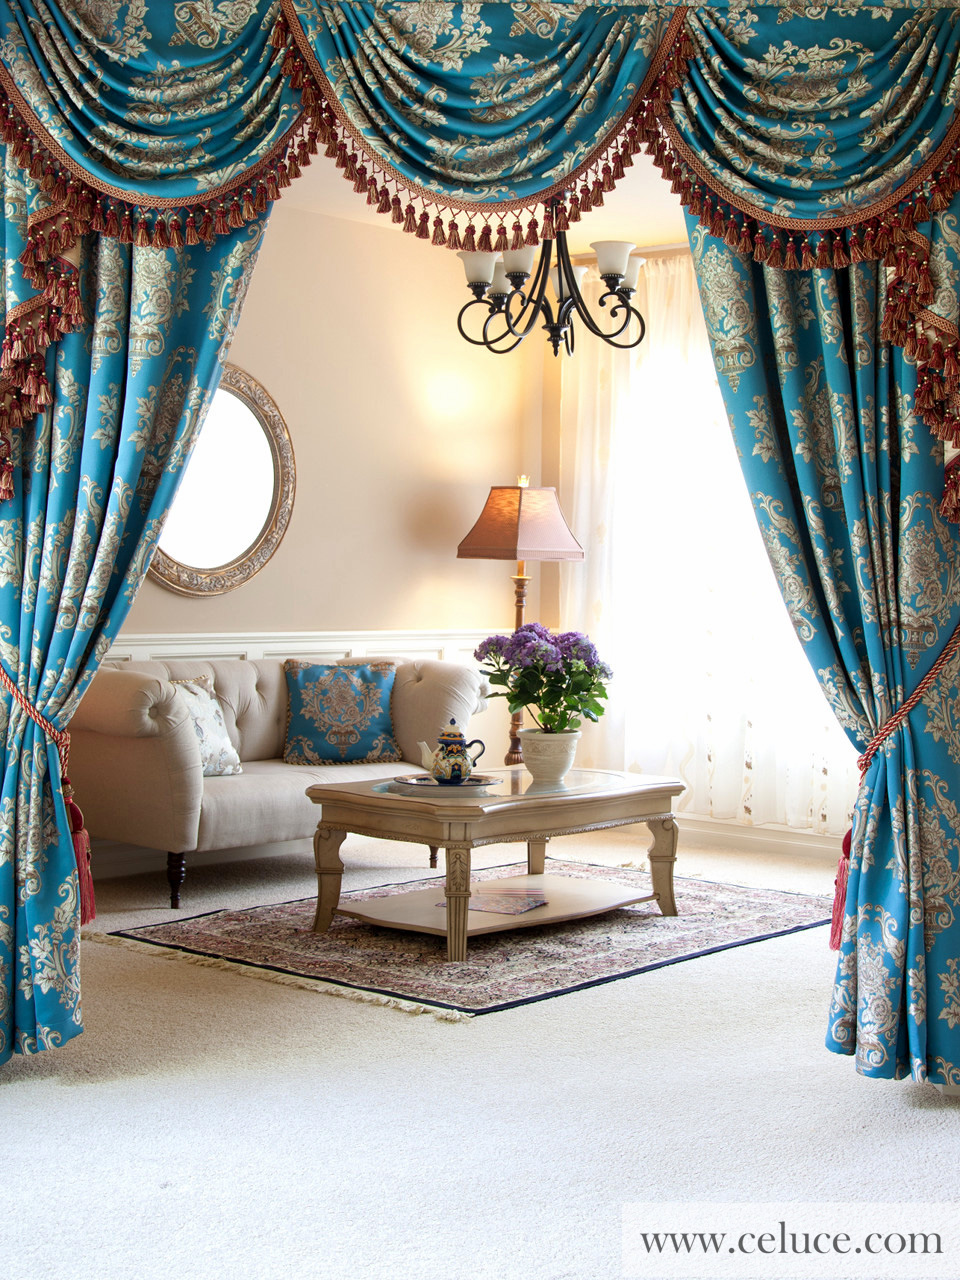 Classic Overlapping Swag Valances Curtain Drapes Blue Lantern Picture 0